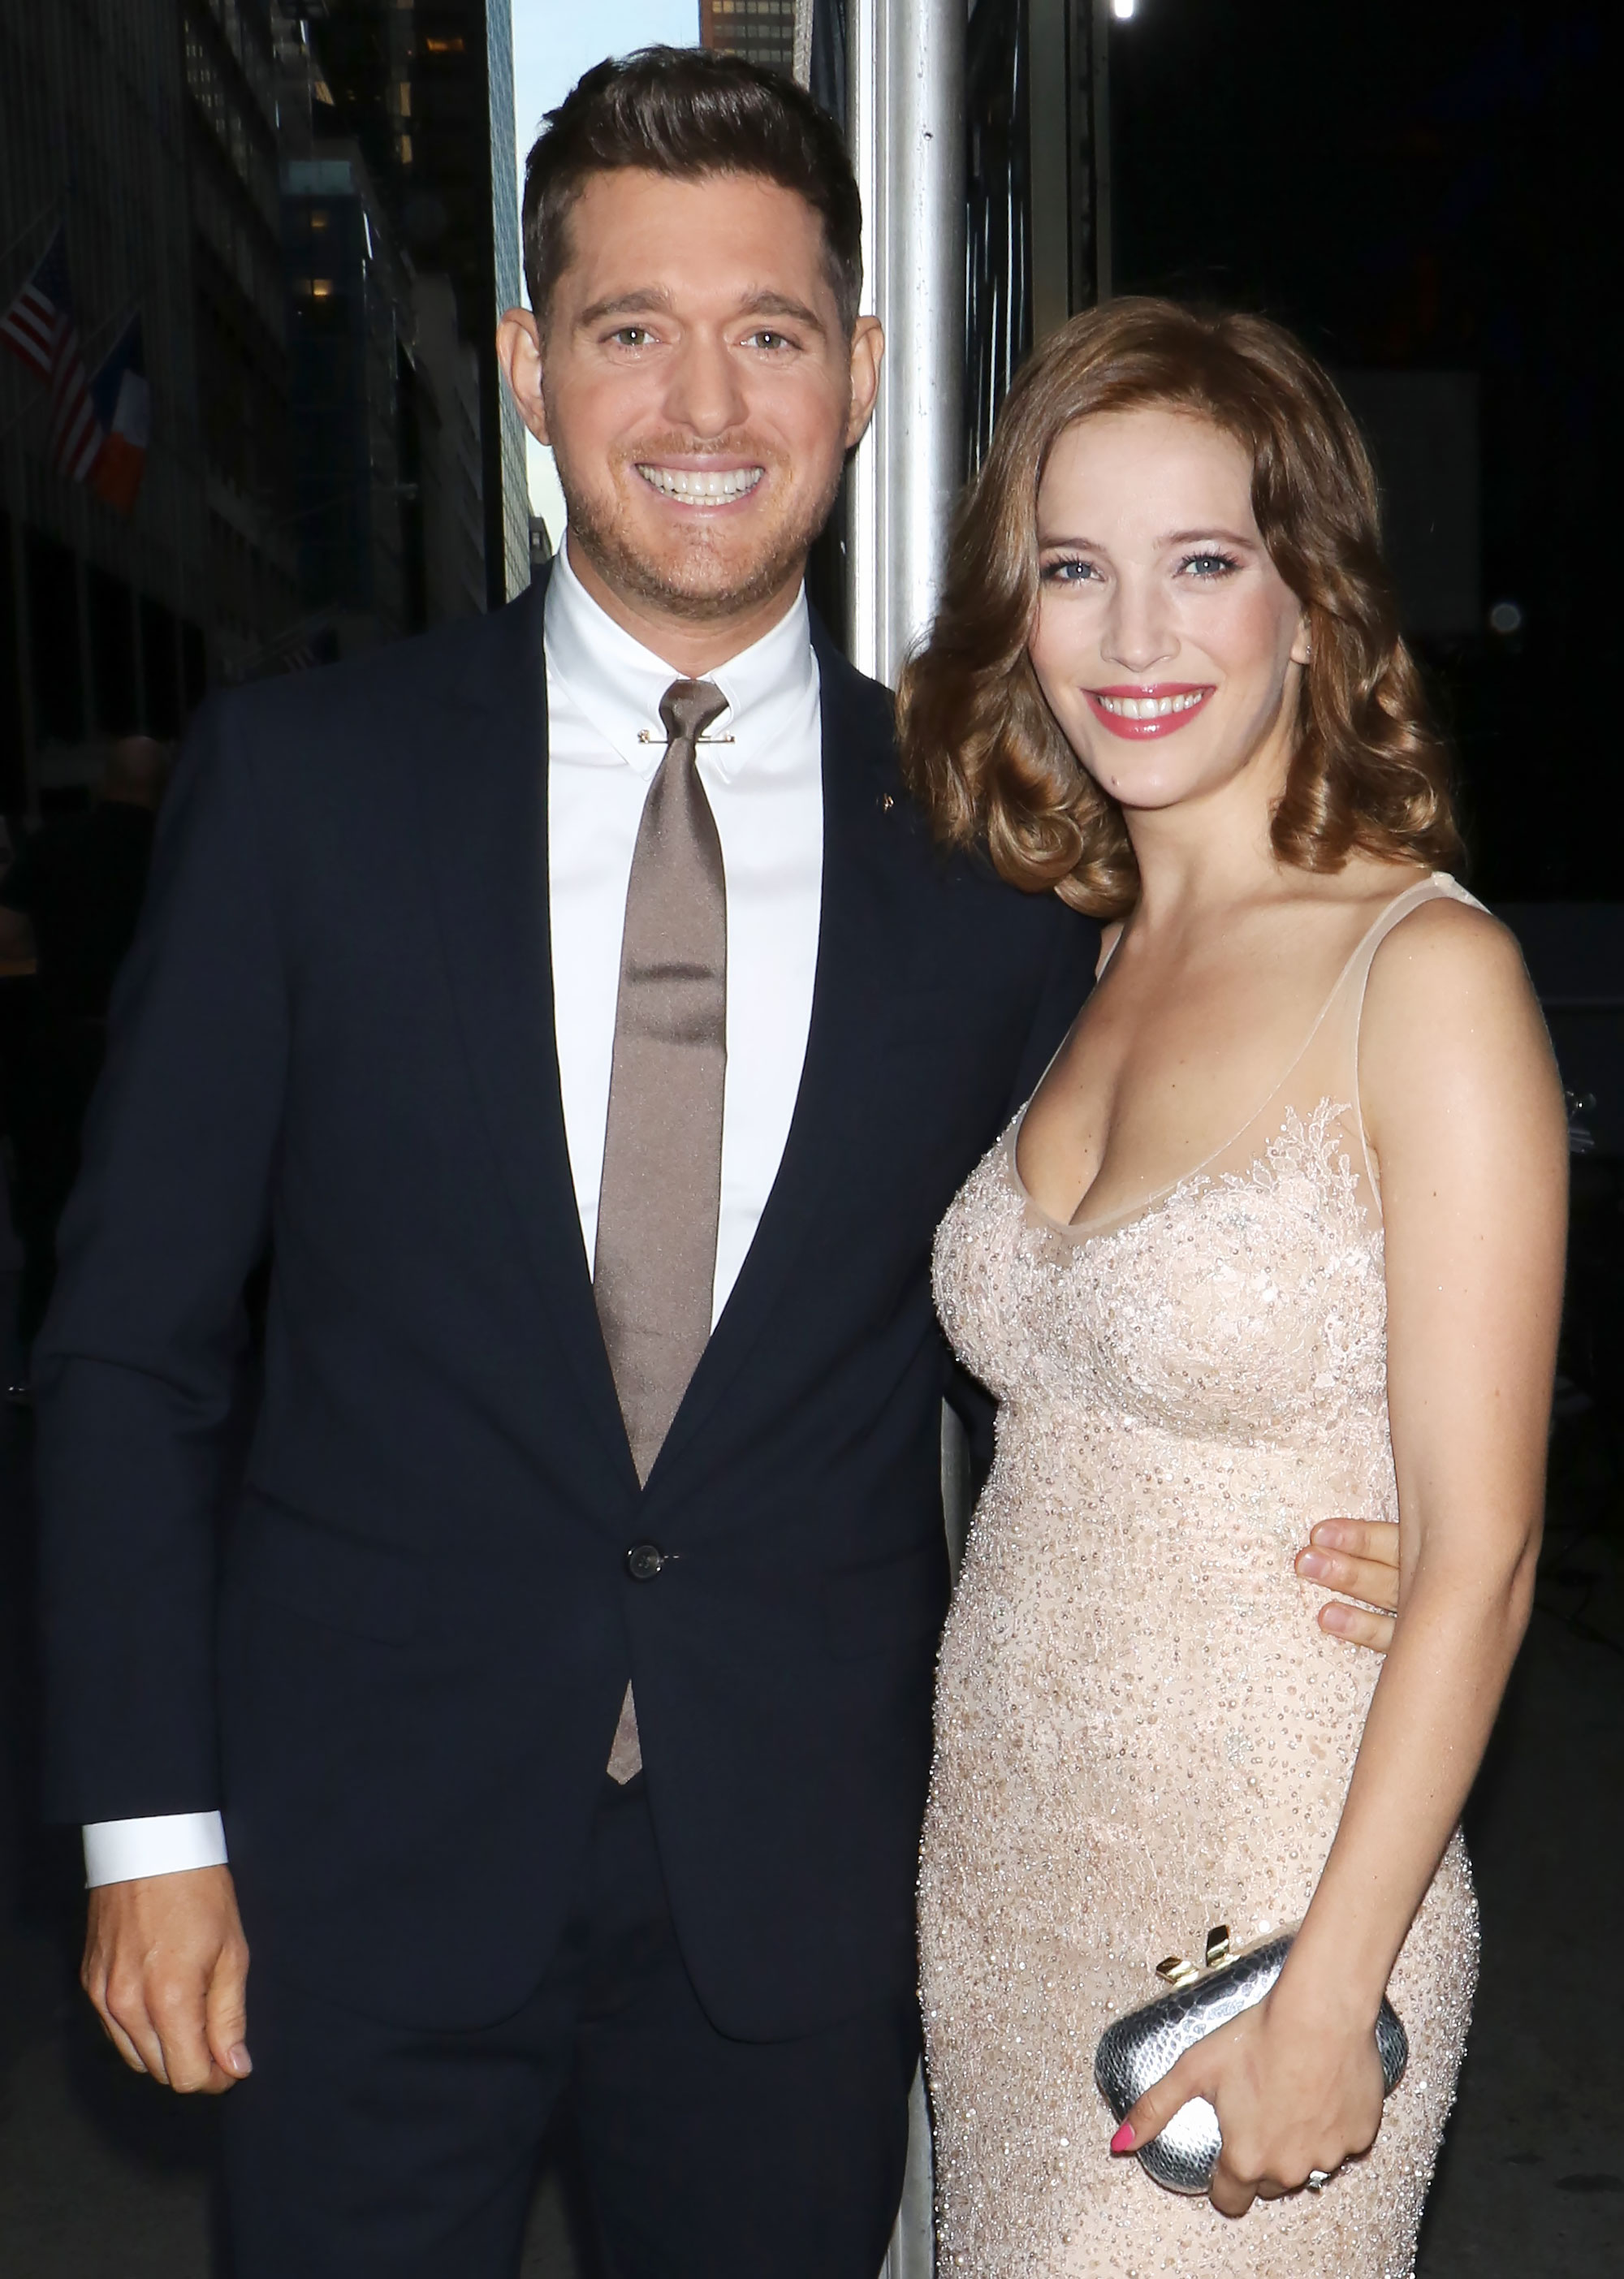 Michael Buble Showers Wife Luisana Lopilato With Compliments After Elbowing Video